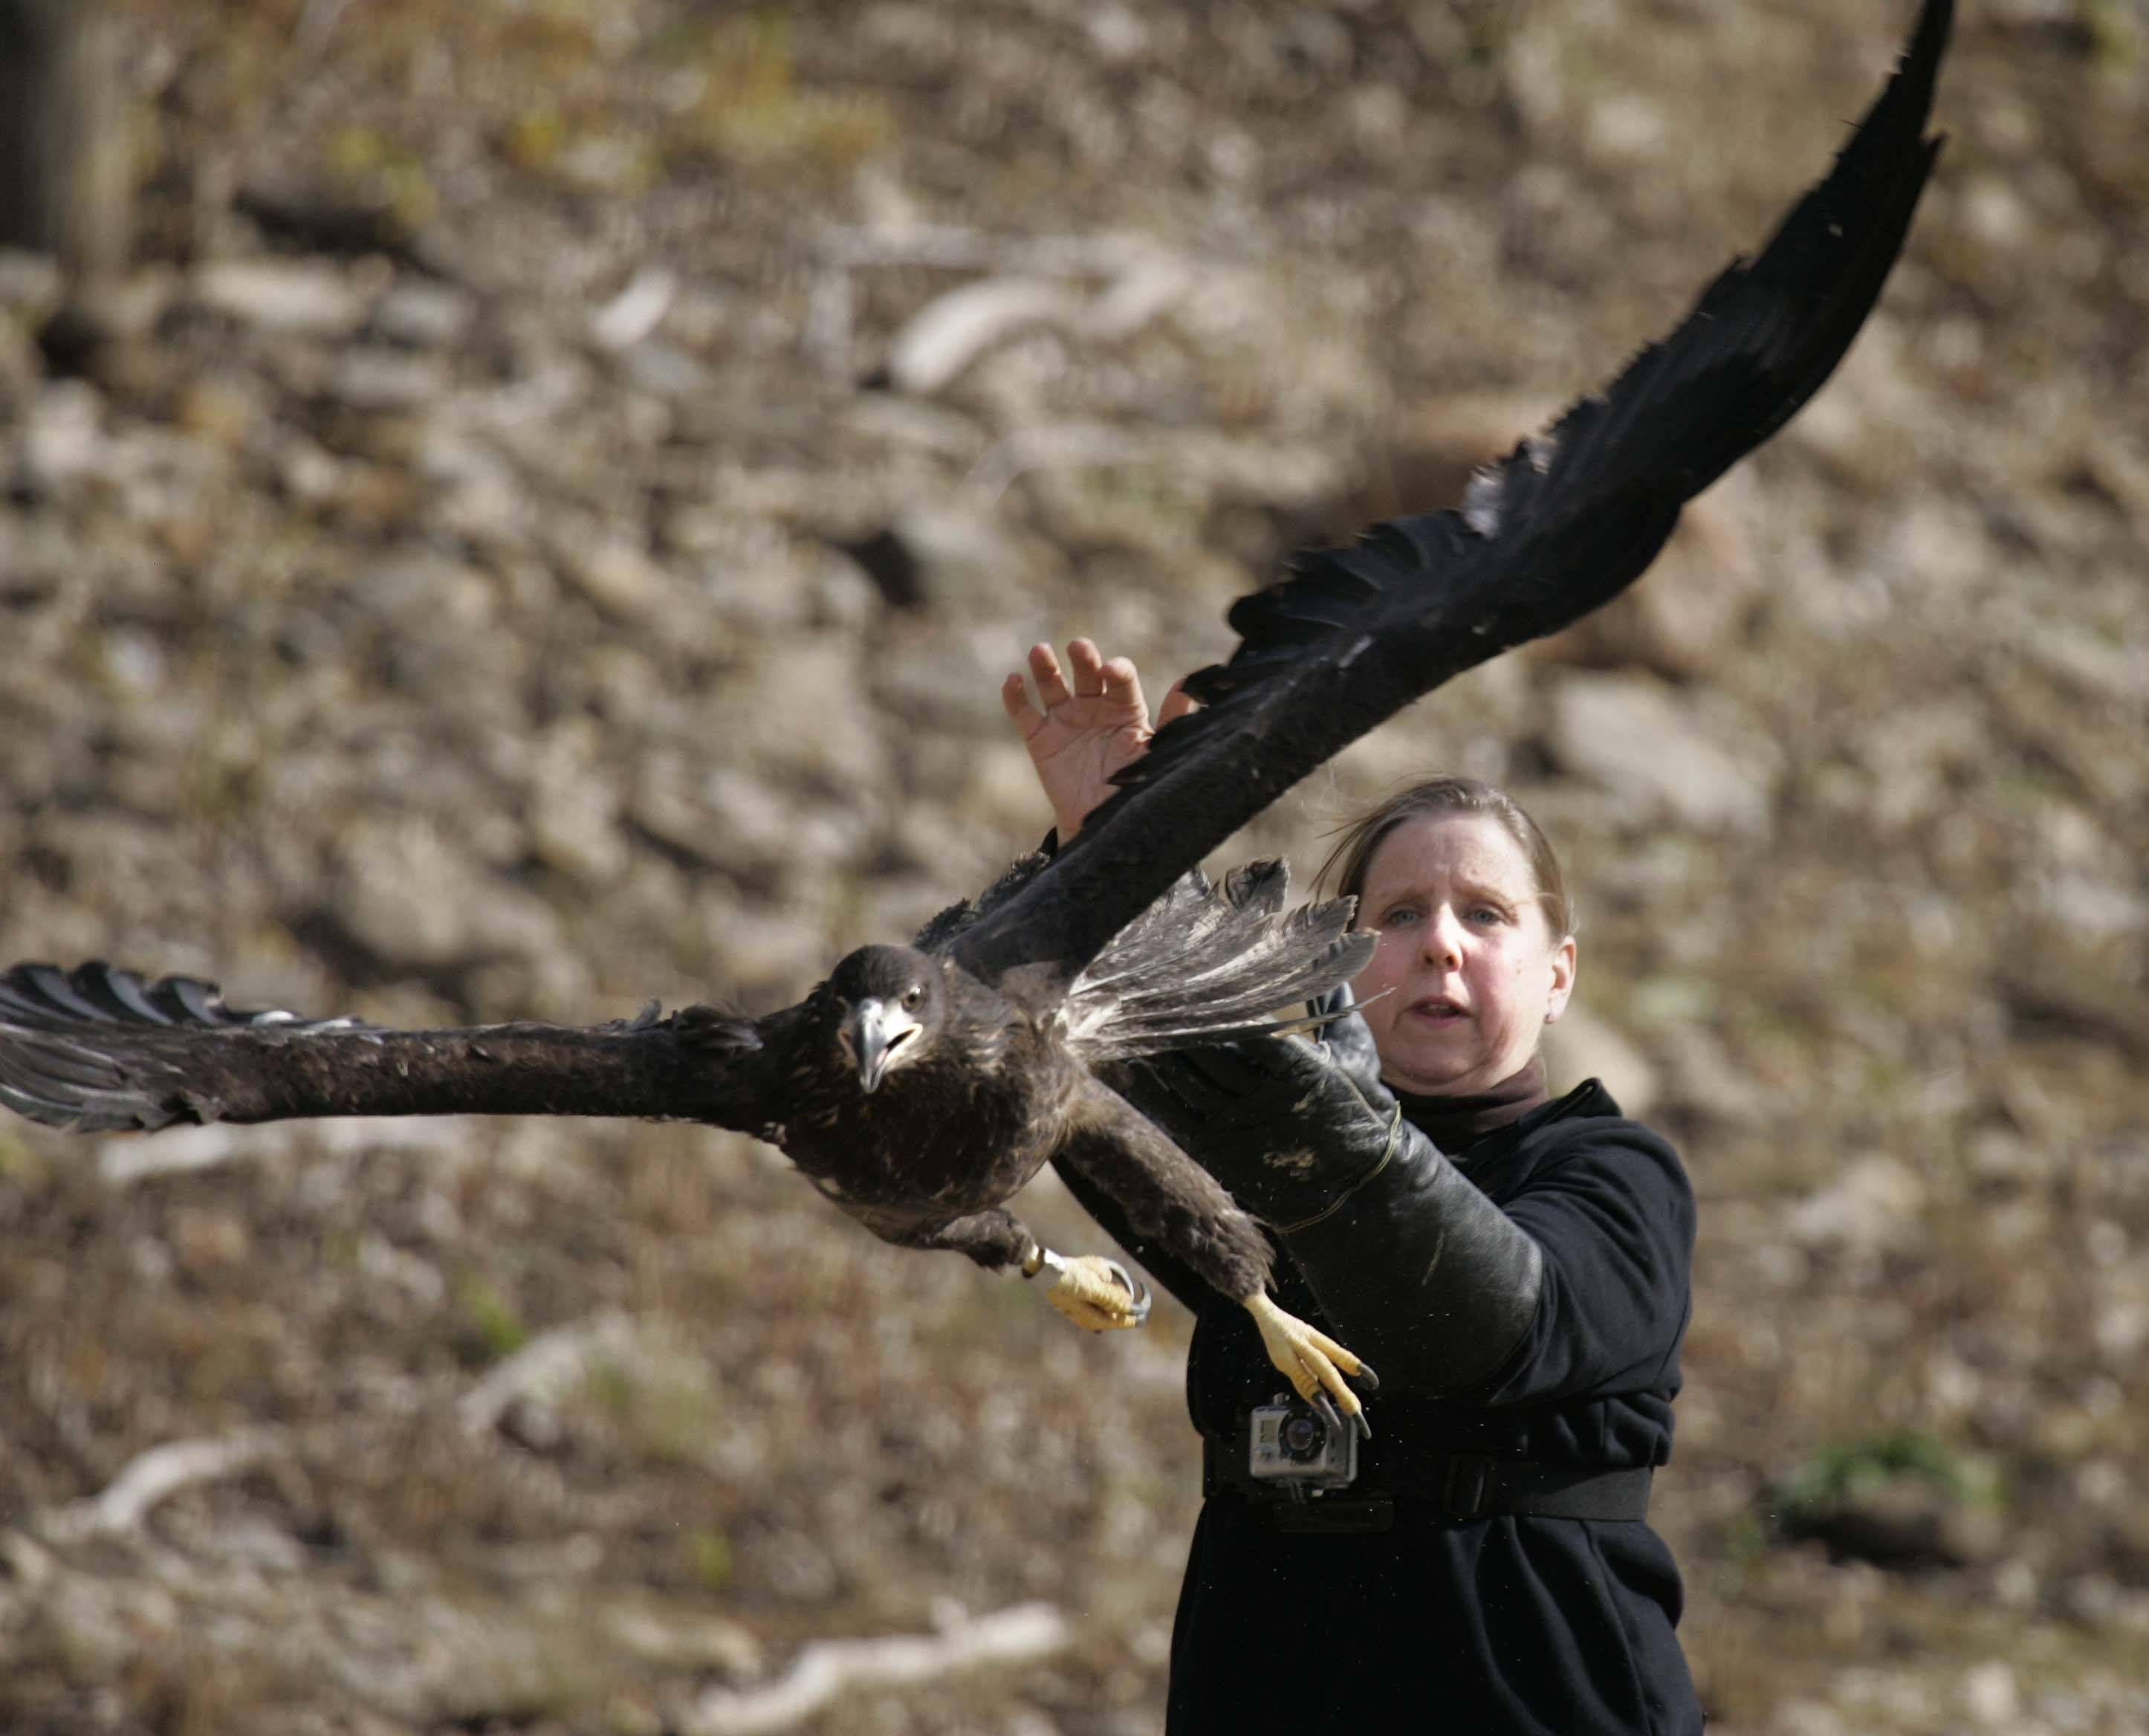 Brian Hill/bhill@dailyherald.comDawn Keller founder and director of Flint Creek Wildlife Rehabilitation releases the first of two eagles Saturday, November 12, 2011 at Starved Rock State Park Utica. The birds were rescued from a fallen nest at Mooseheart.